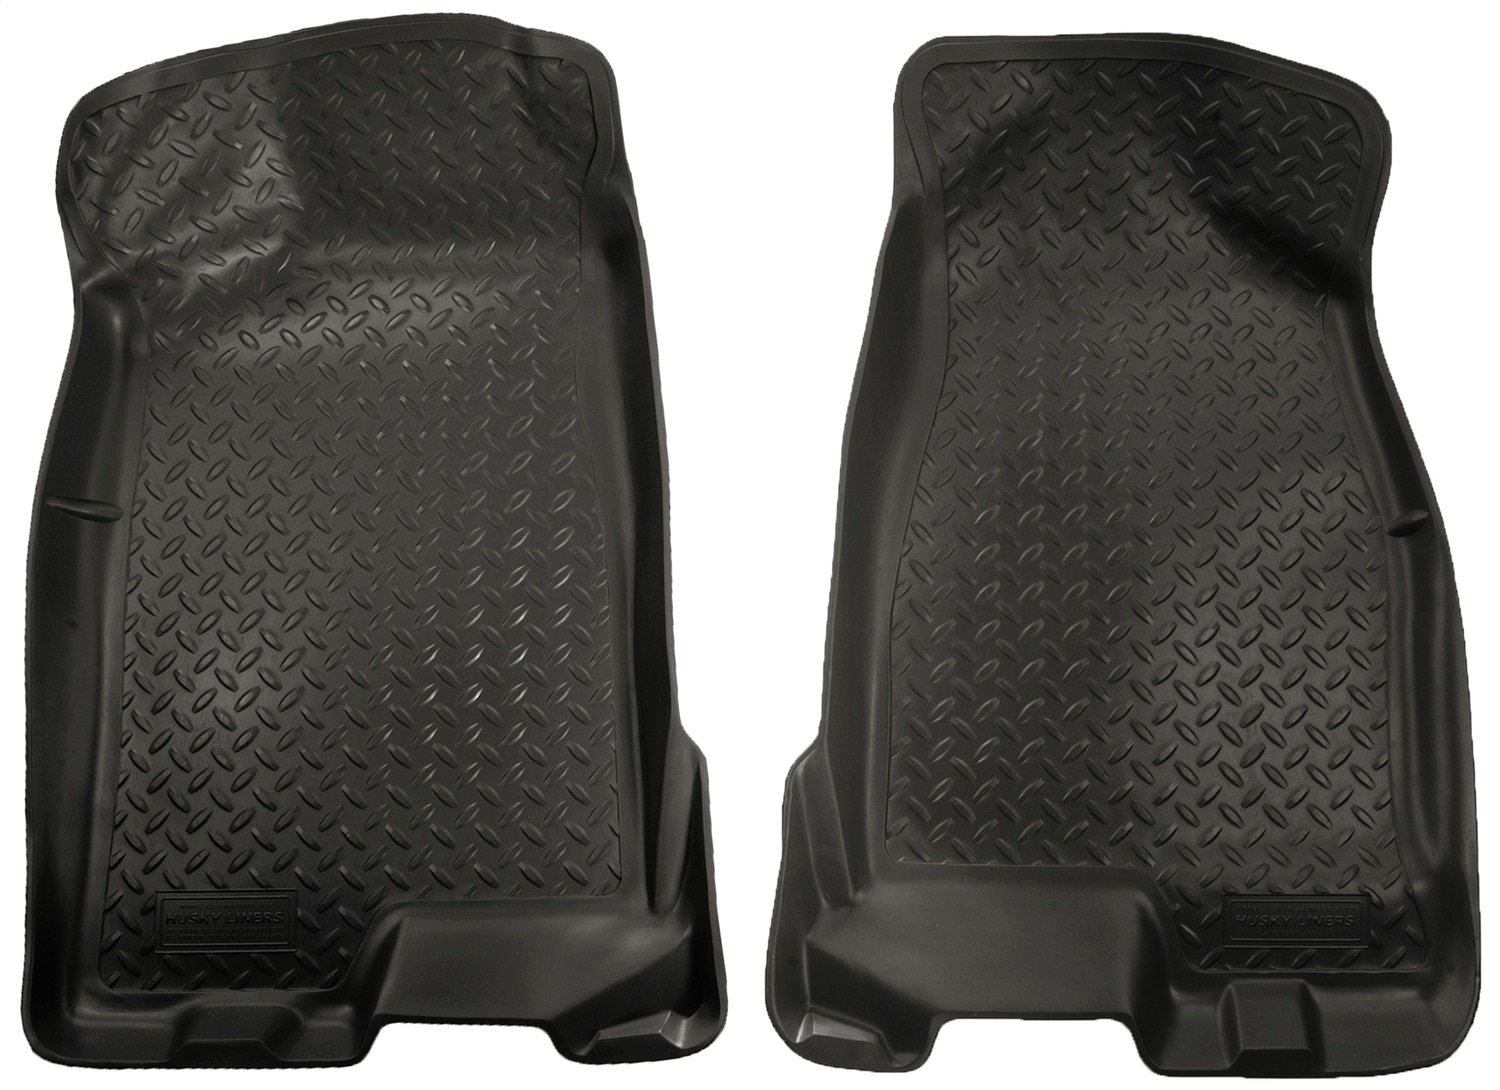 Husky Liners Front Floor Liners Fits 04-12 Colorado//Canyon Crew Cab